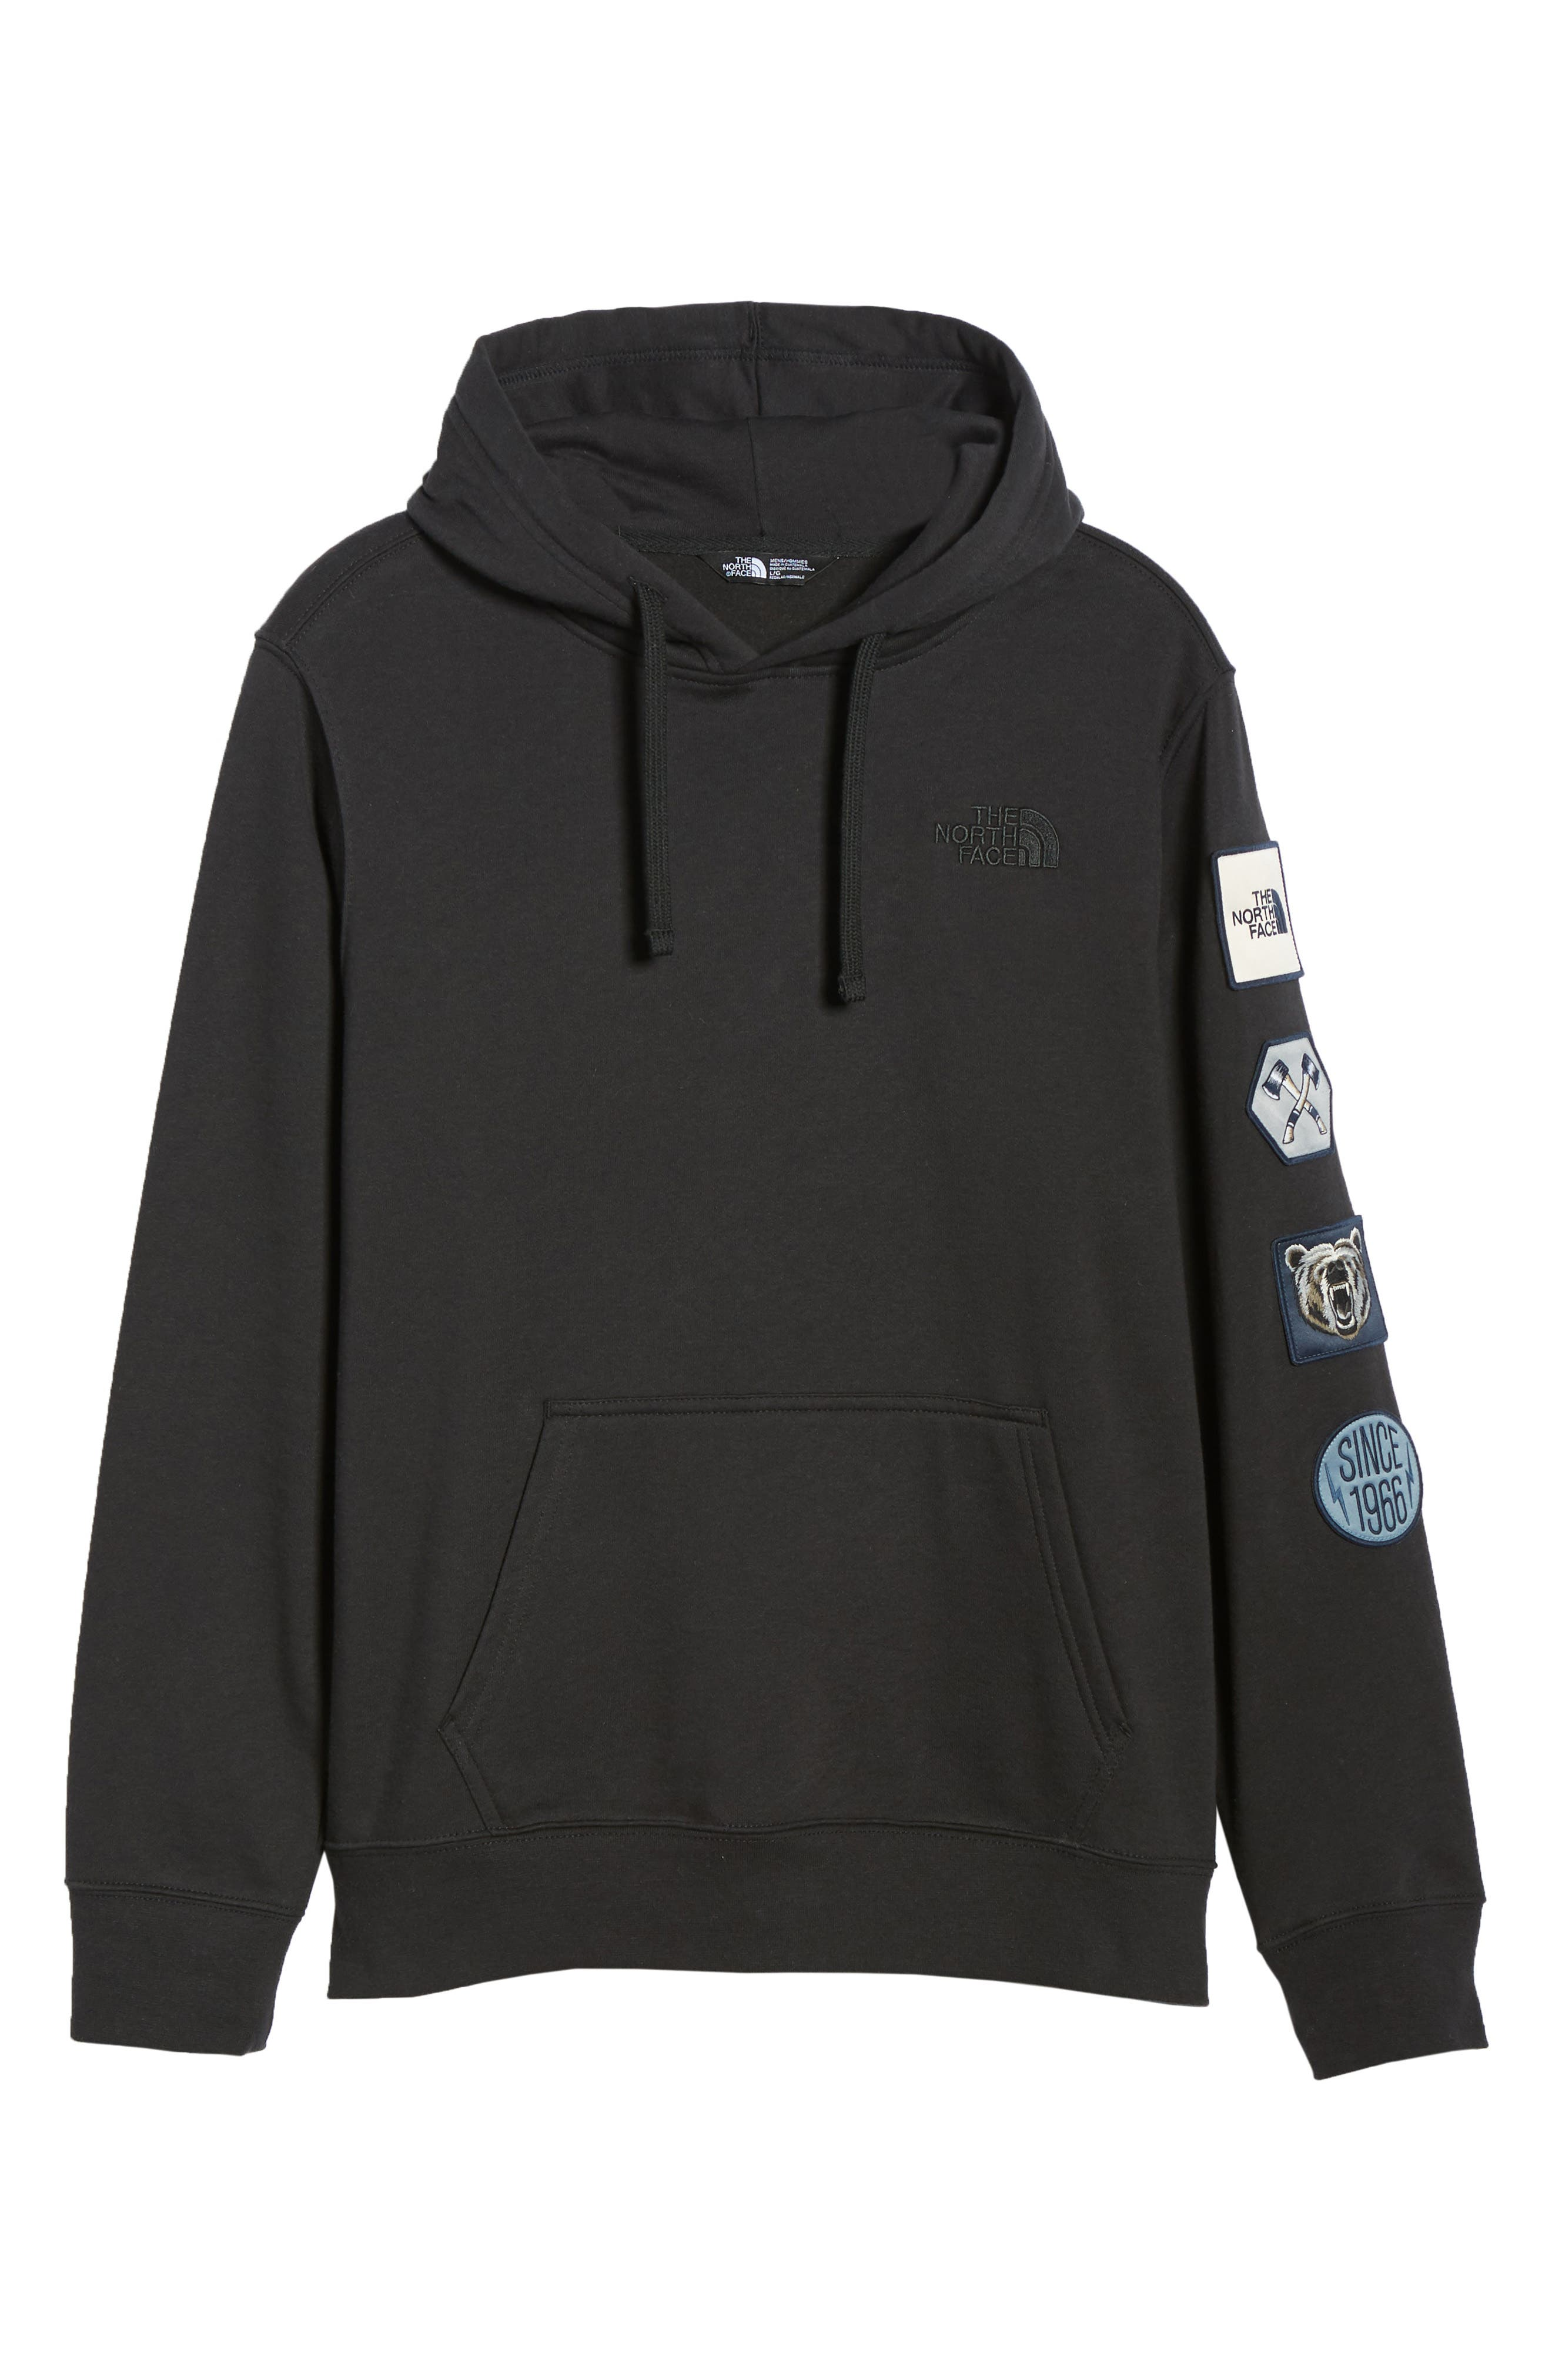 Urban Patches Hoodie,                             Alternate thumbnail 6, color,                             001